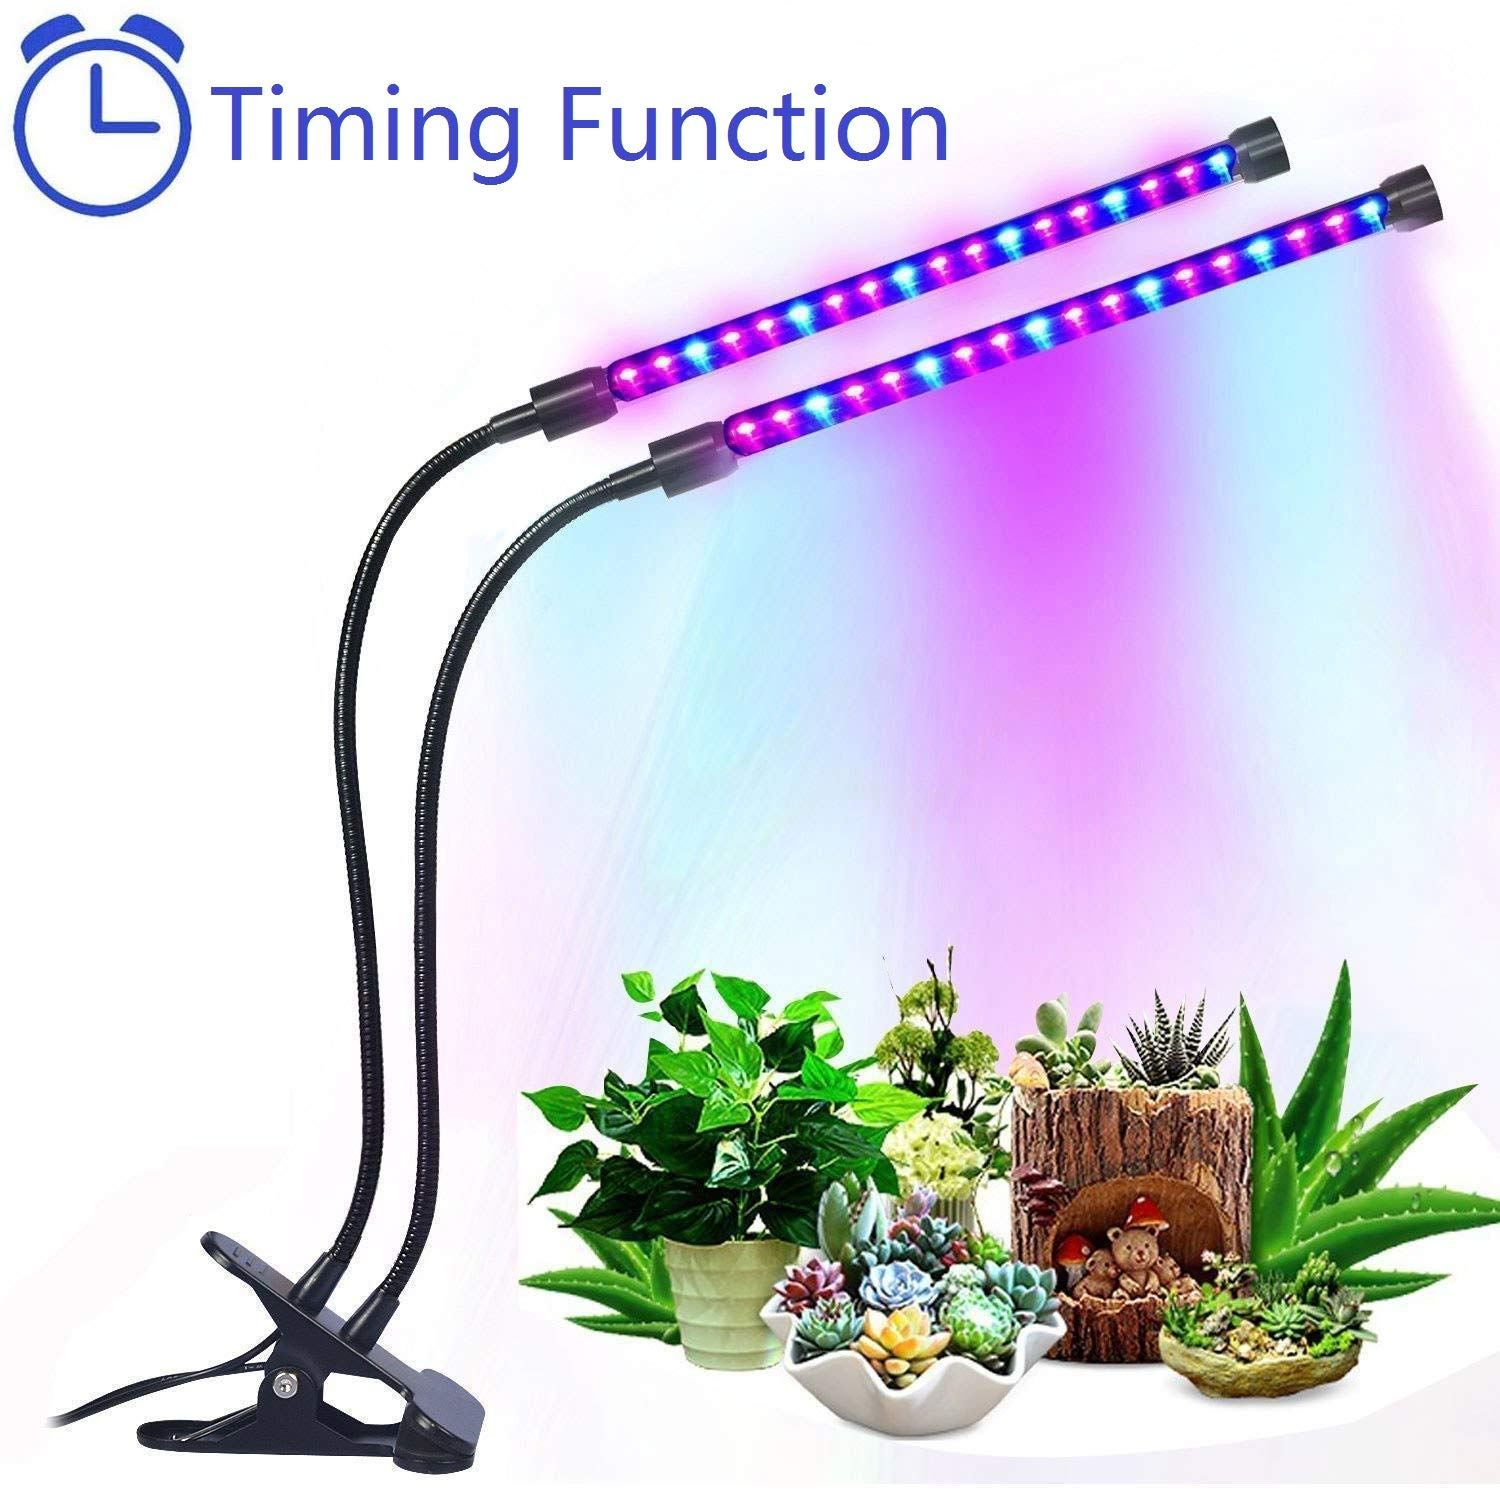 Sobotoo Dual Head Grow Lamp 36 LED with Red/Blue 5 Dimmable Levels Grow Light with Adjustable Gooseneck, 3 Modes Timing Function (3H/6H/12H) Plant Lights for Indoor Plants Garden Tent (Grow Lamp)